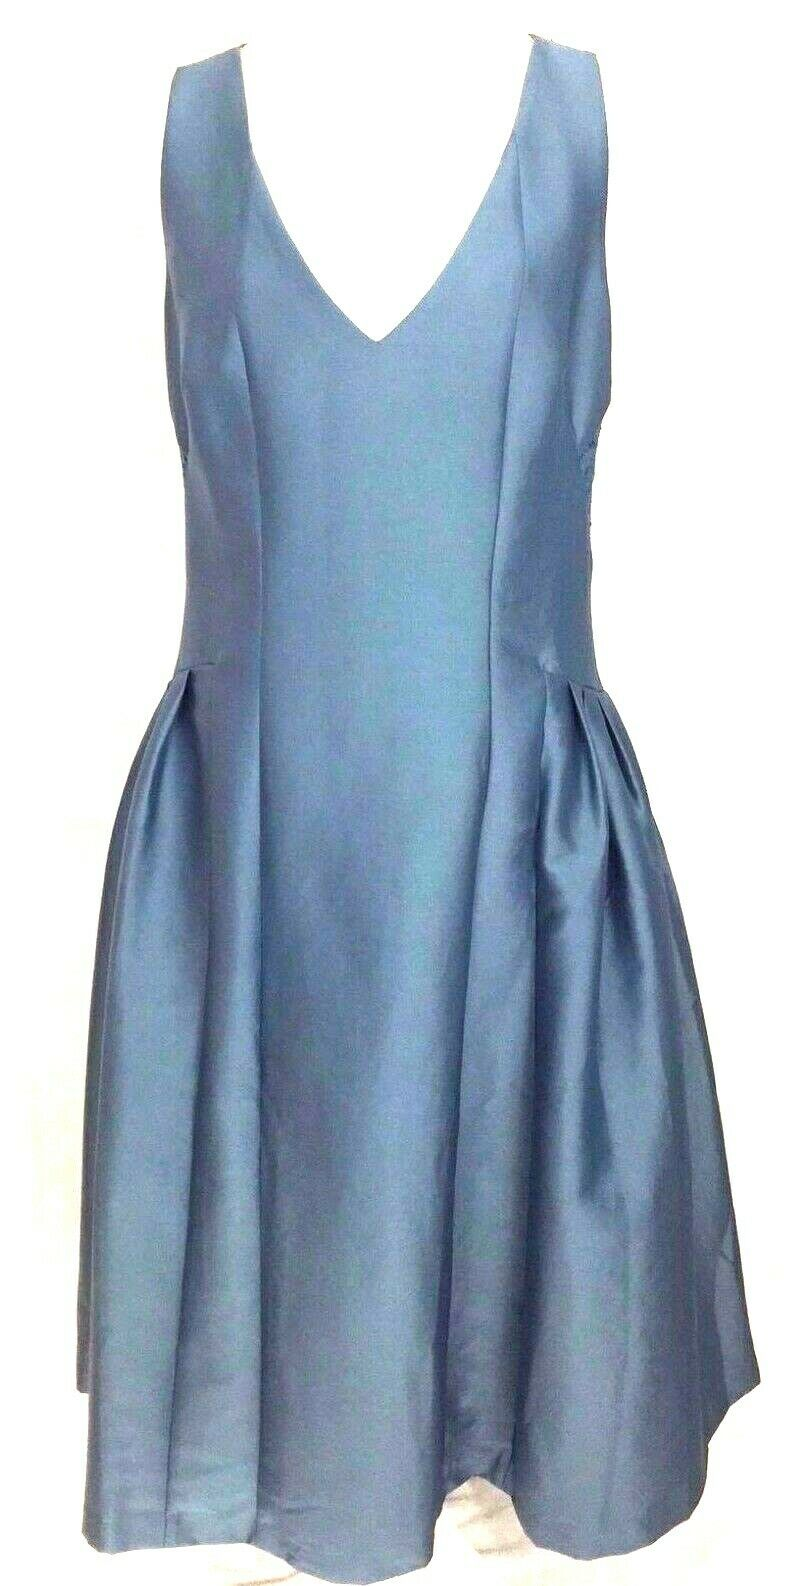 ASOS WOMENS DRESS SIZE 12 ELEGANT TEAL BLUE LACE OPEN BACK AND SIDES MAXI LENGTH